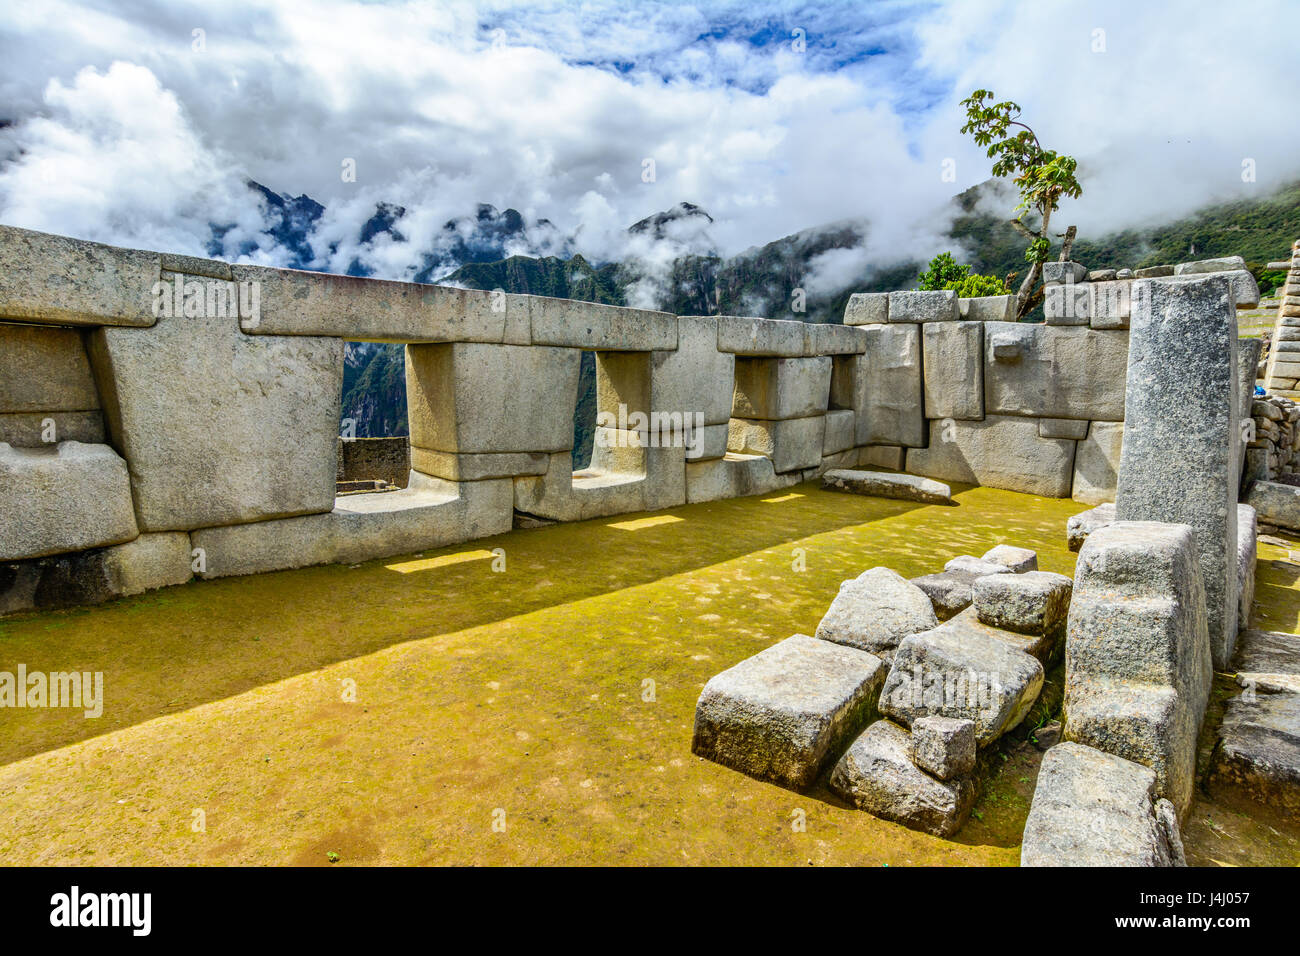 The Temple of the Three Windows in Machu Picchu - Stock Image